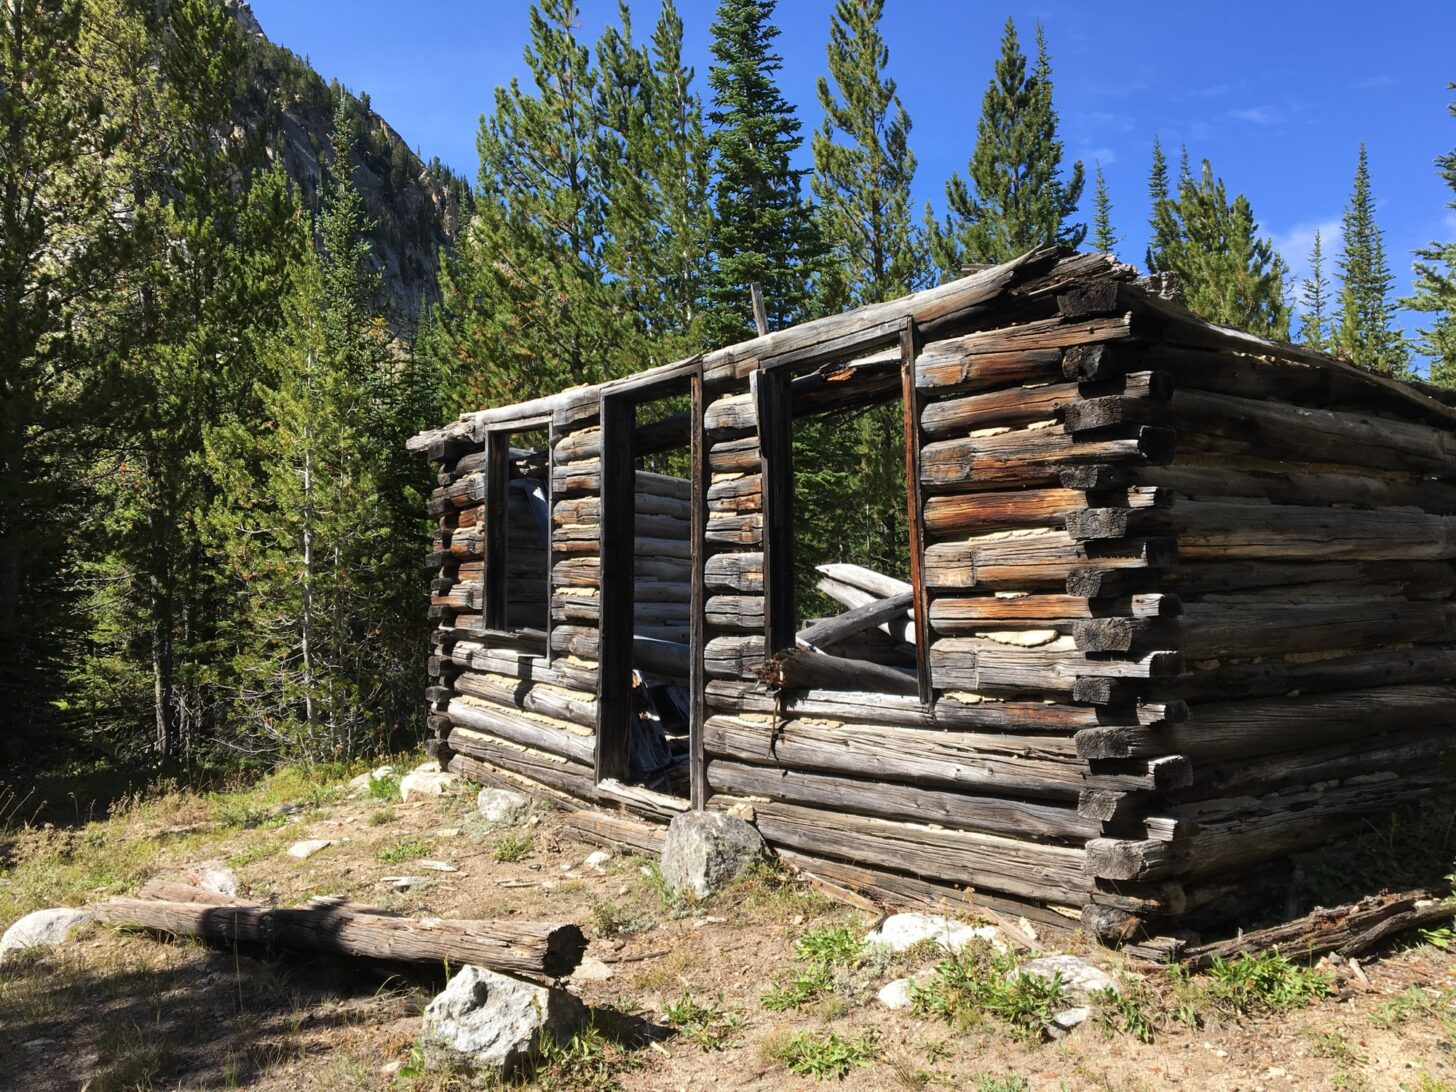 a ramshackle cabin surrounded by trees